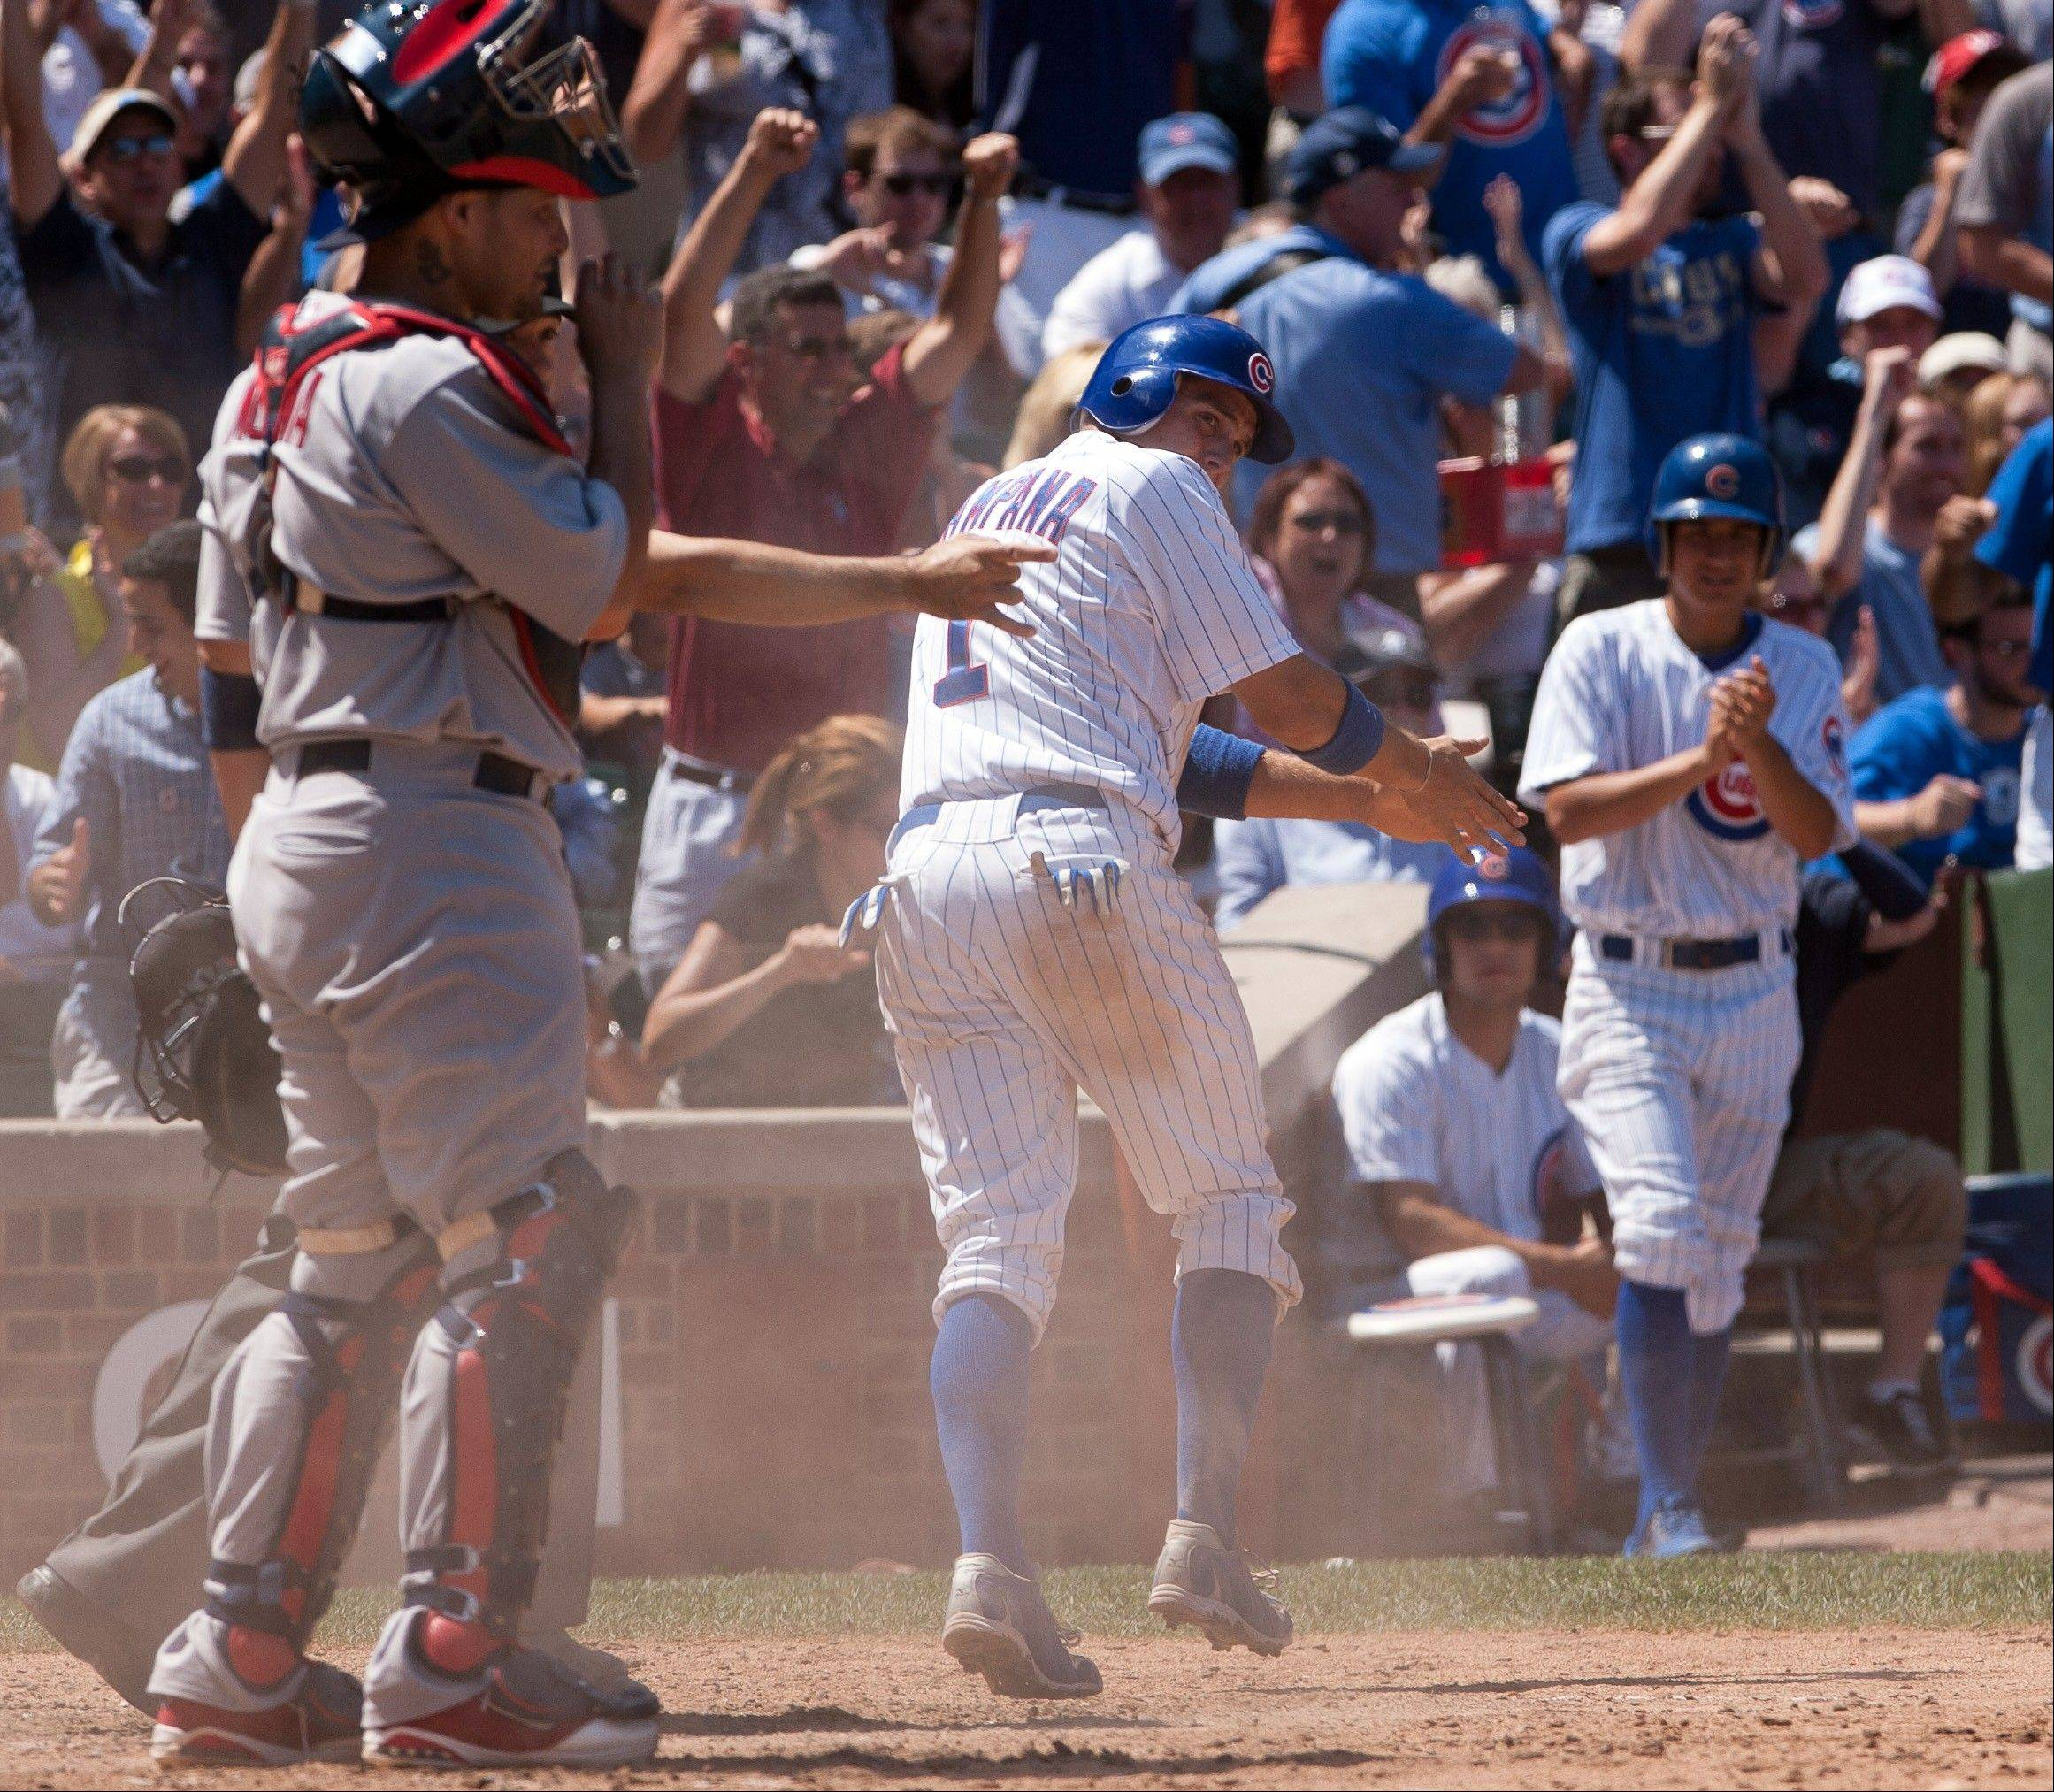 Tony Campana, center, scores what turned out to be the winning run Saturday at Wrigley Field.